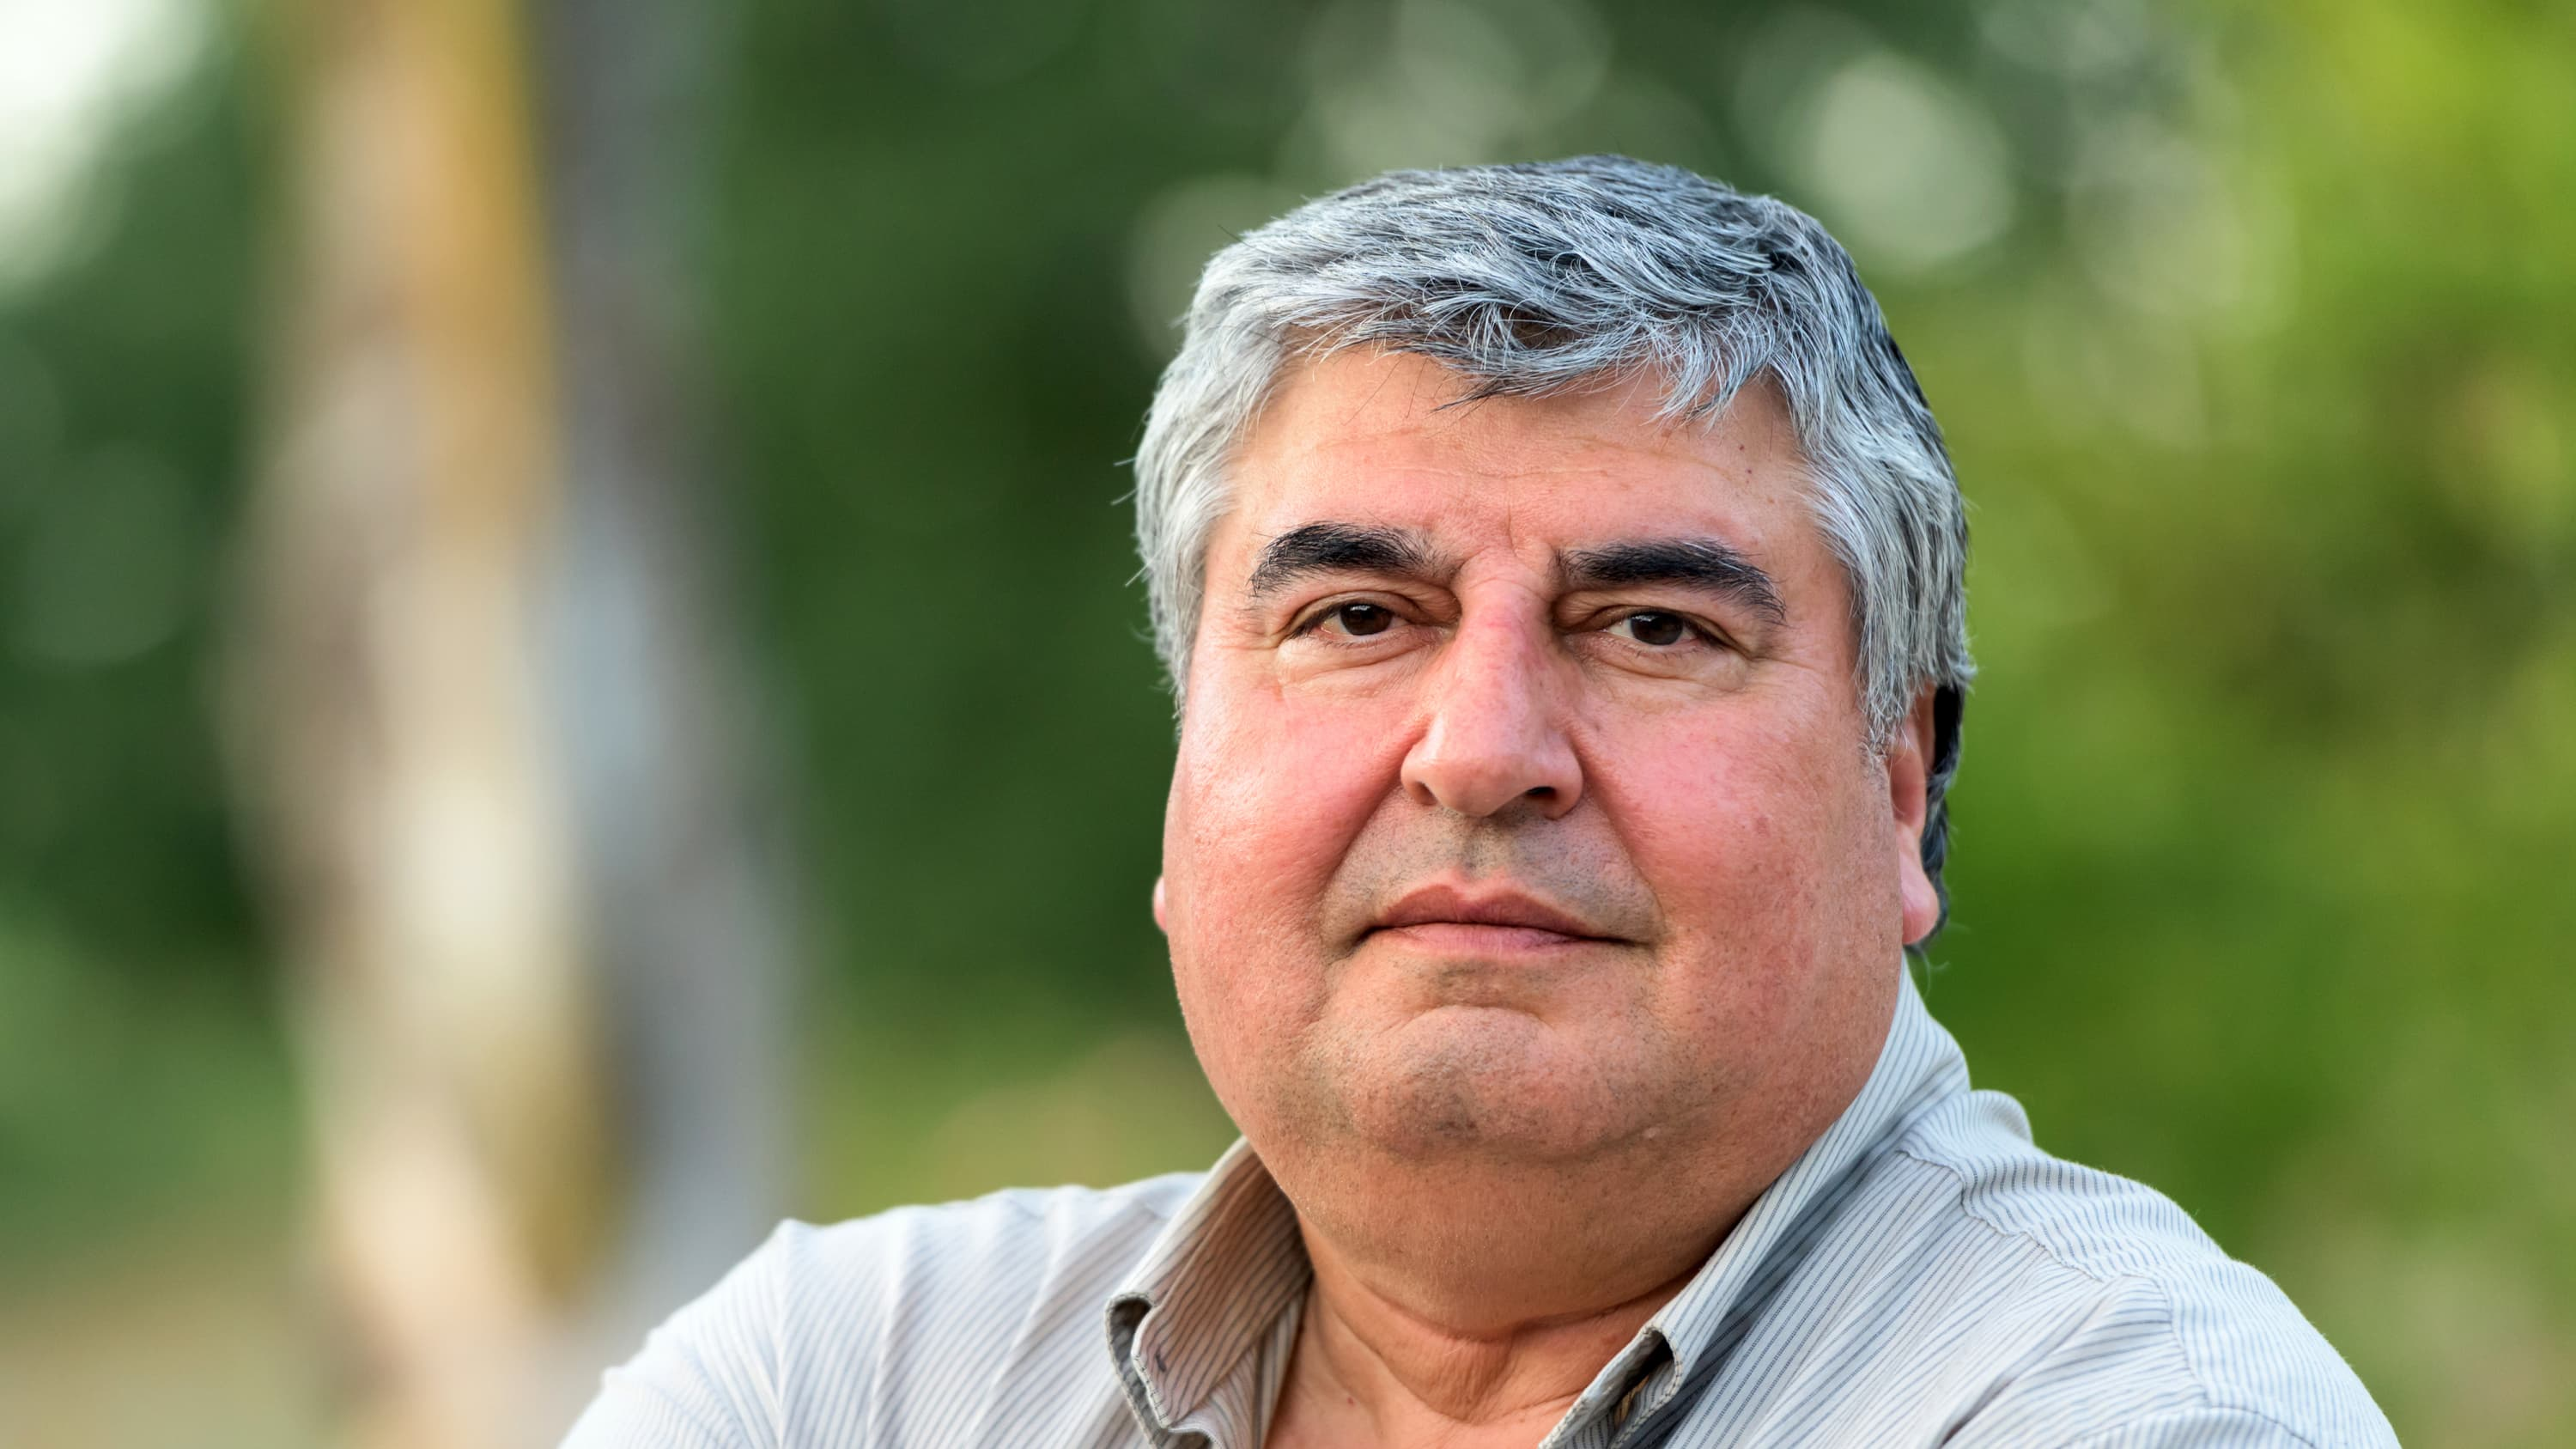 An overweight man who may have peripheral artery disease looks into the camera. He is wearing a grey polo shirt against a green, leafy background.